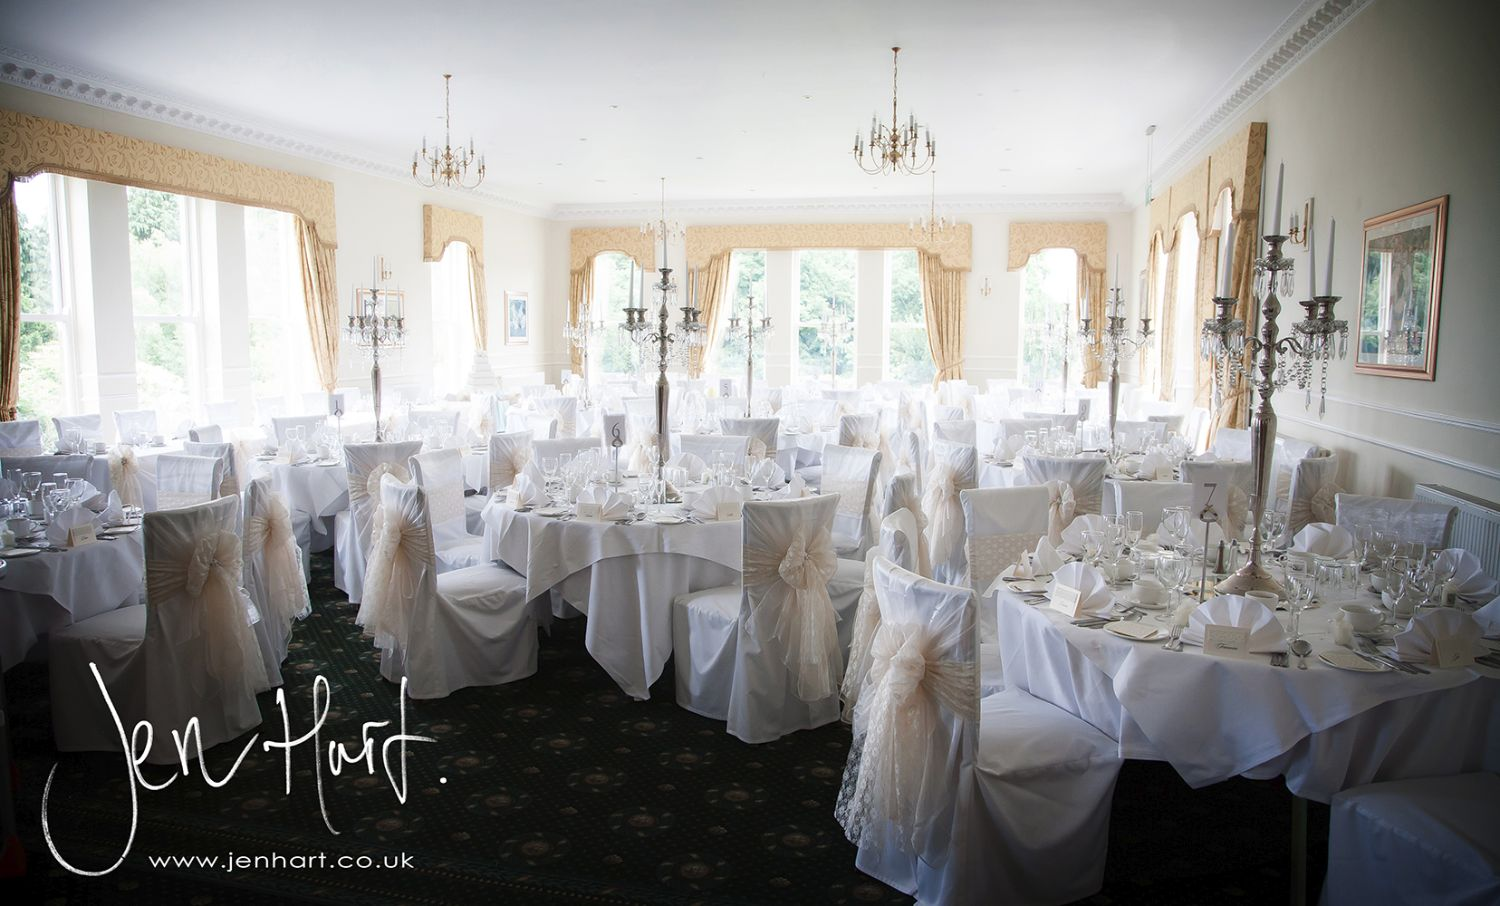 Photograph_Grinkle_Park_Wedding_Andrea&Rob_28JUN14_177_30